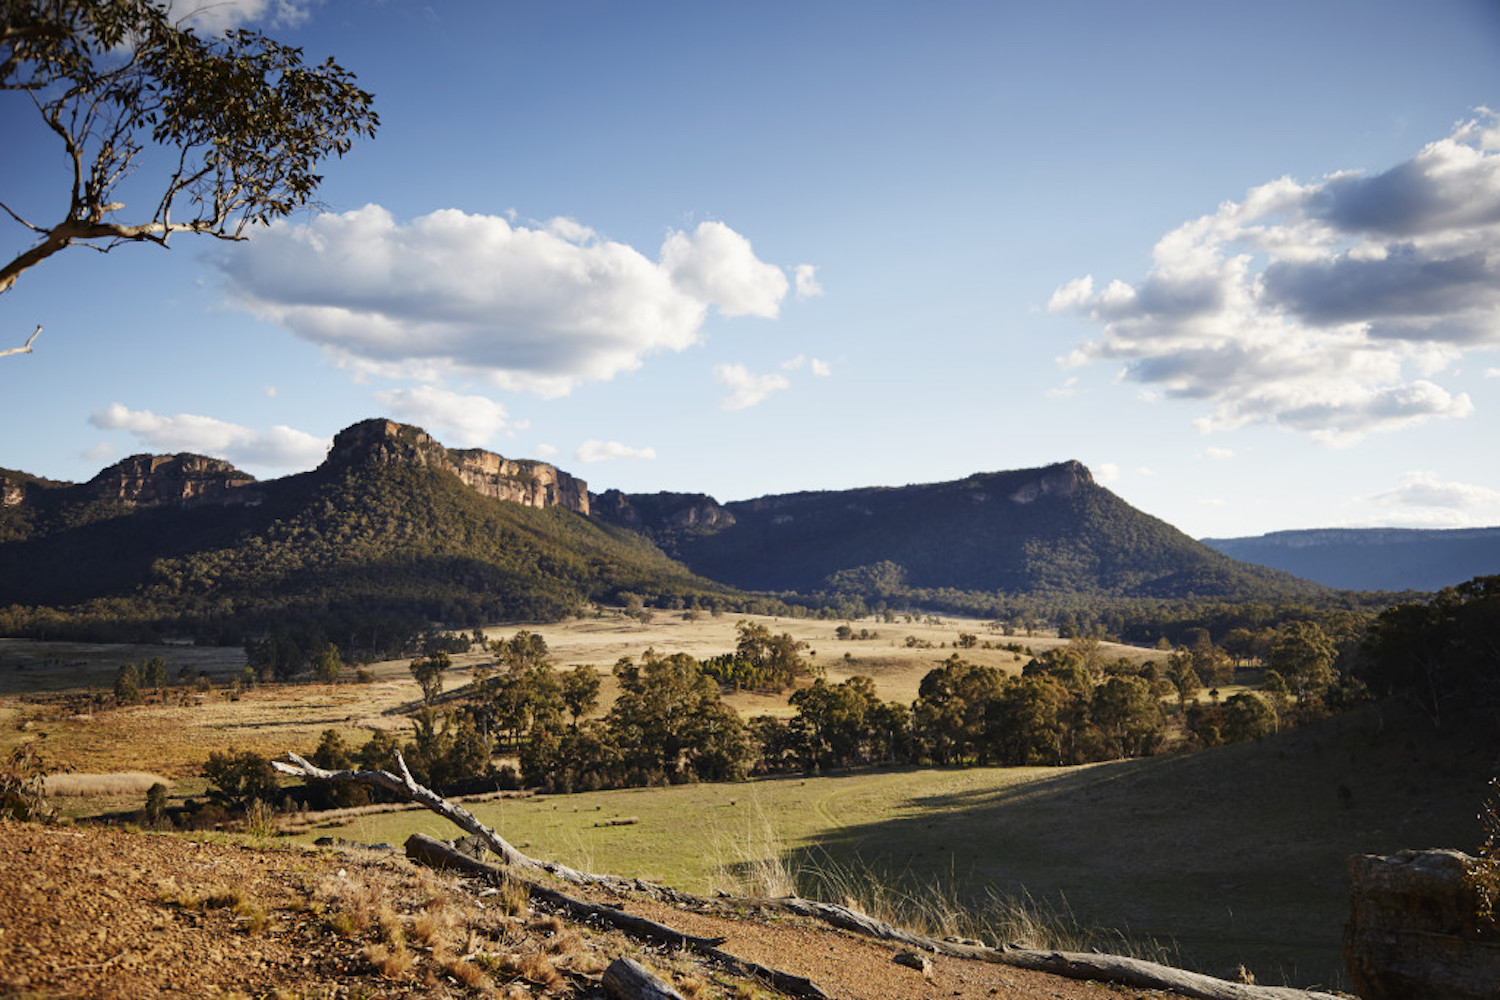 Emirates One&Only Wolgan Valley in the Blue Mountains